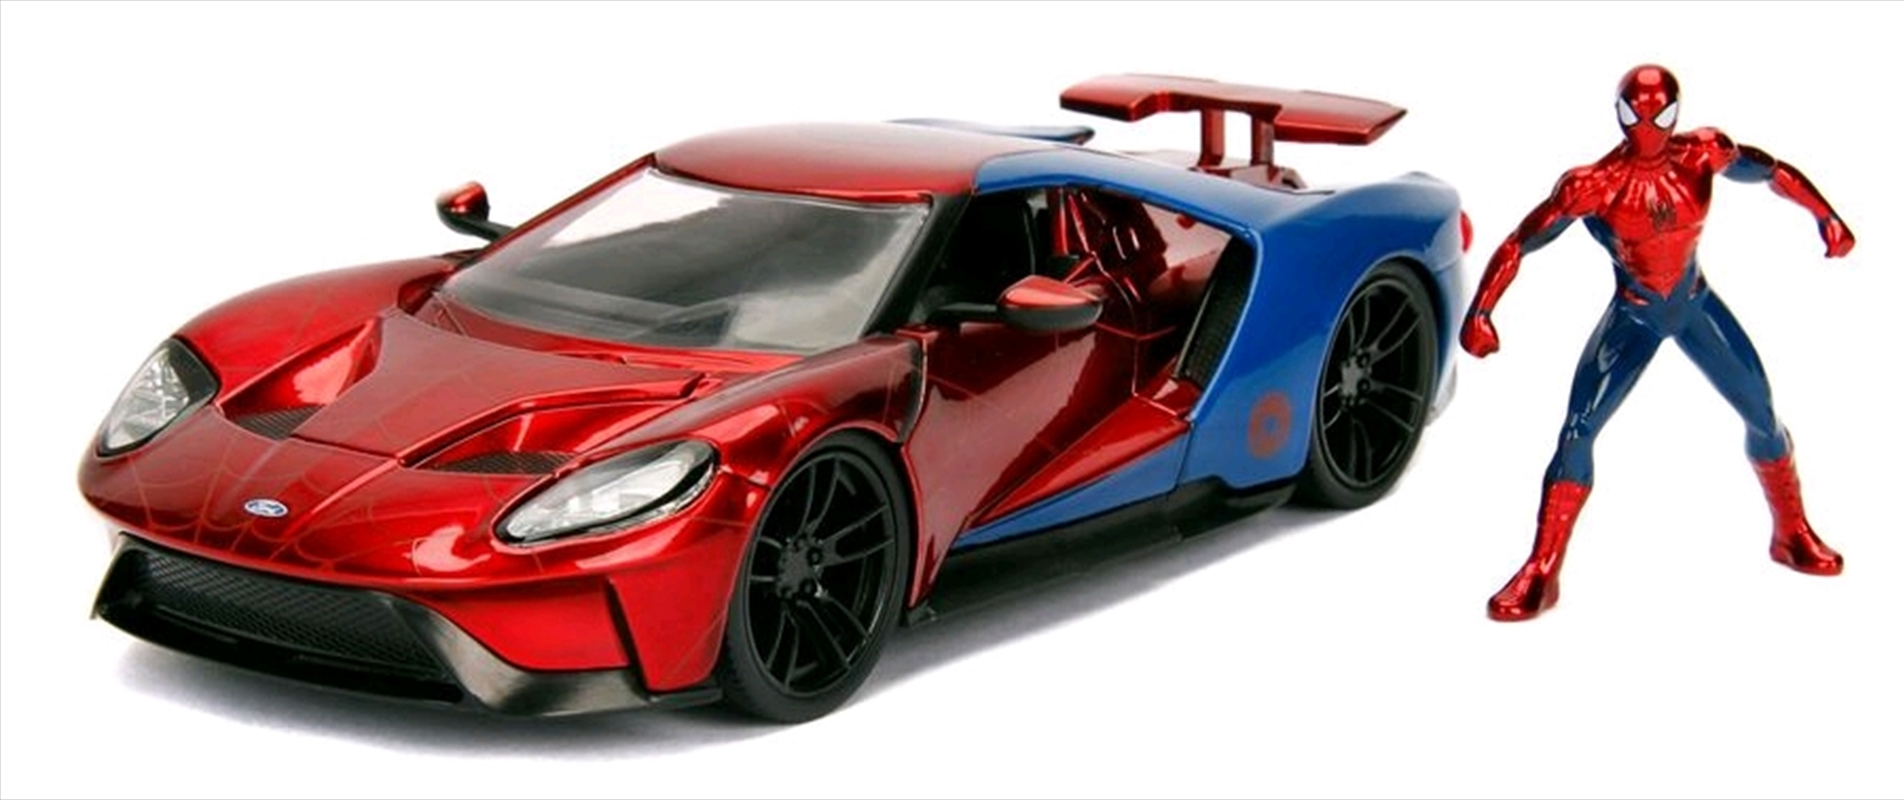 Spider-Man - 2017 Ford GT Hollywood Rides 1:24 Scale Diecast Vehicle | Merchandise